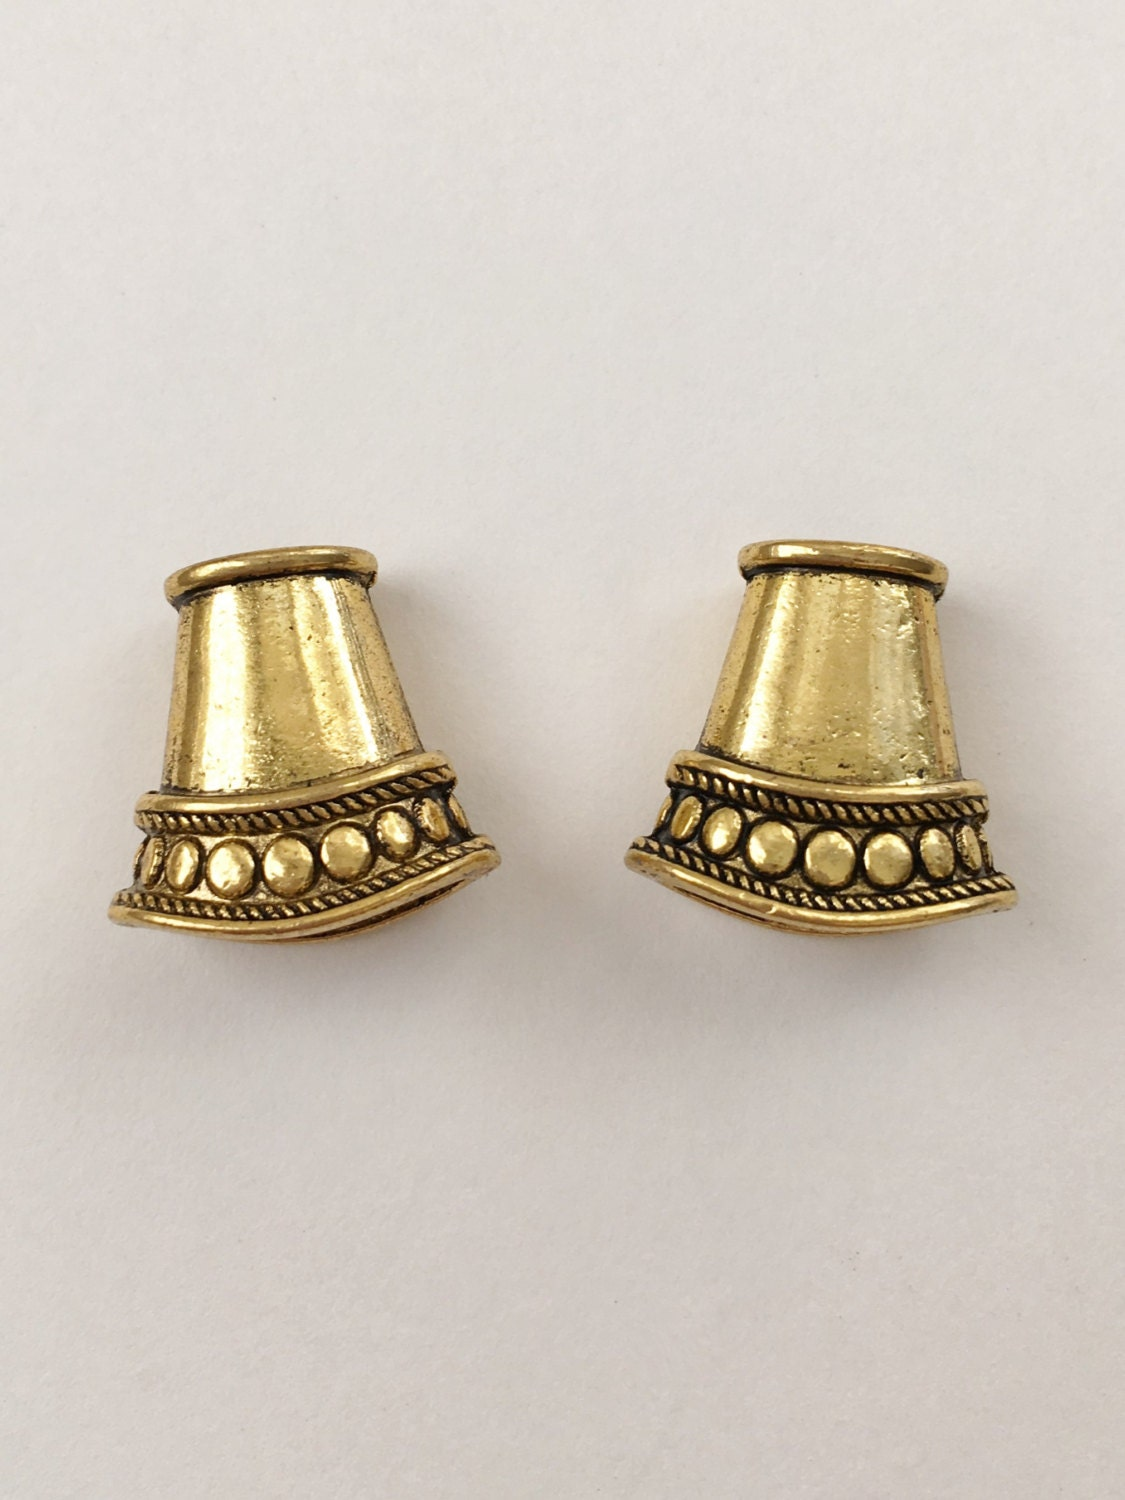 Antique gold cord ends end caps flattened cone shaped